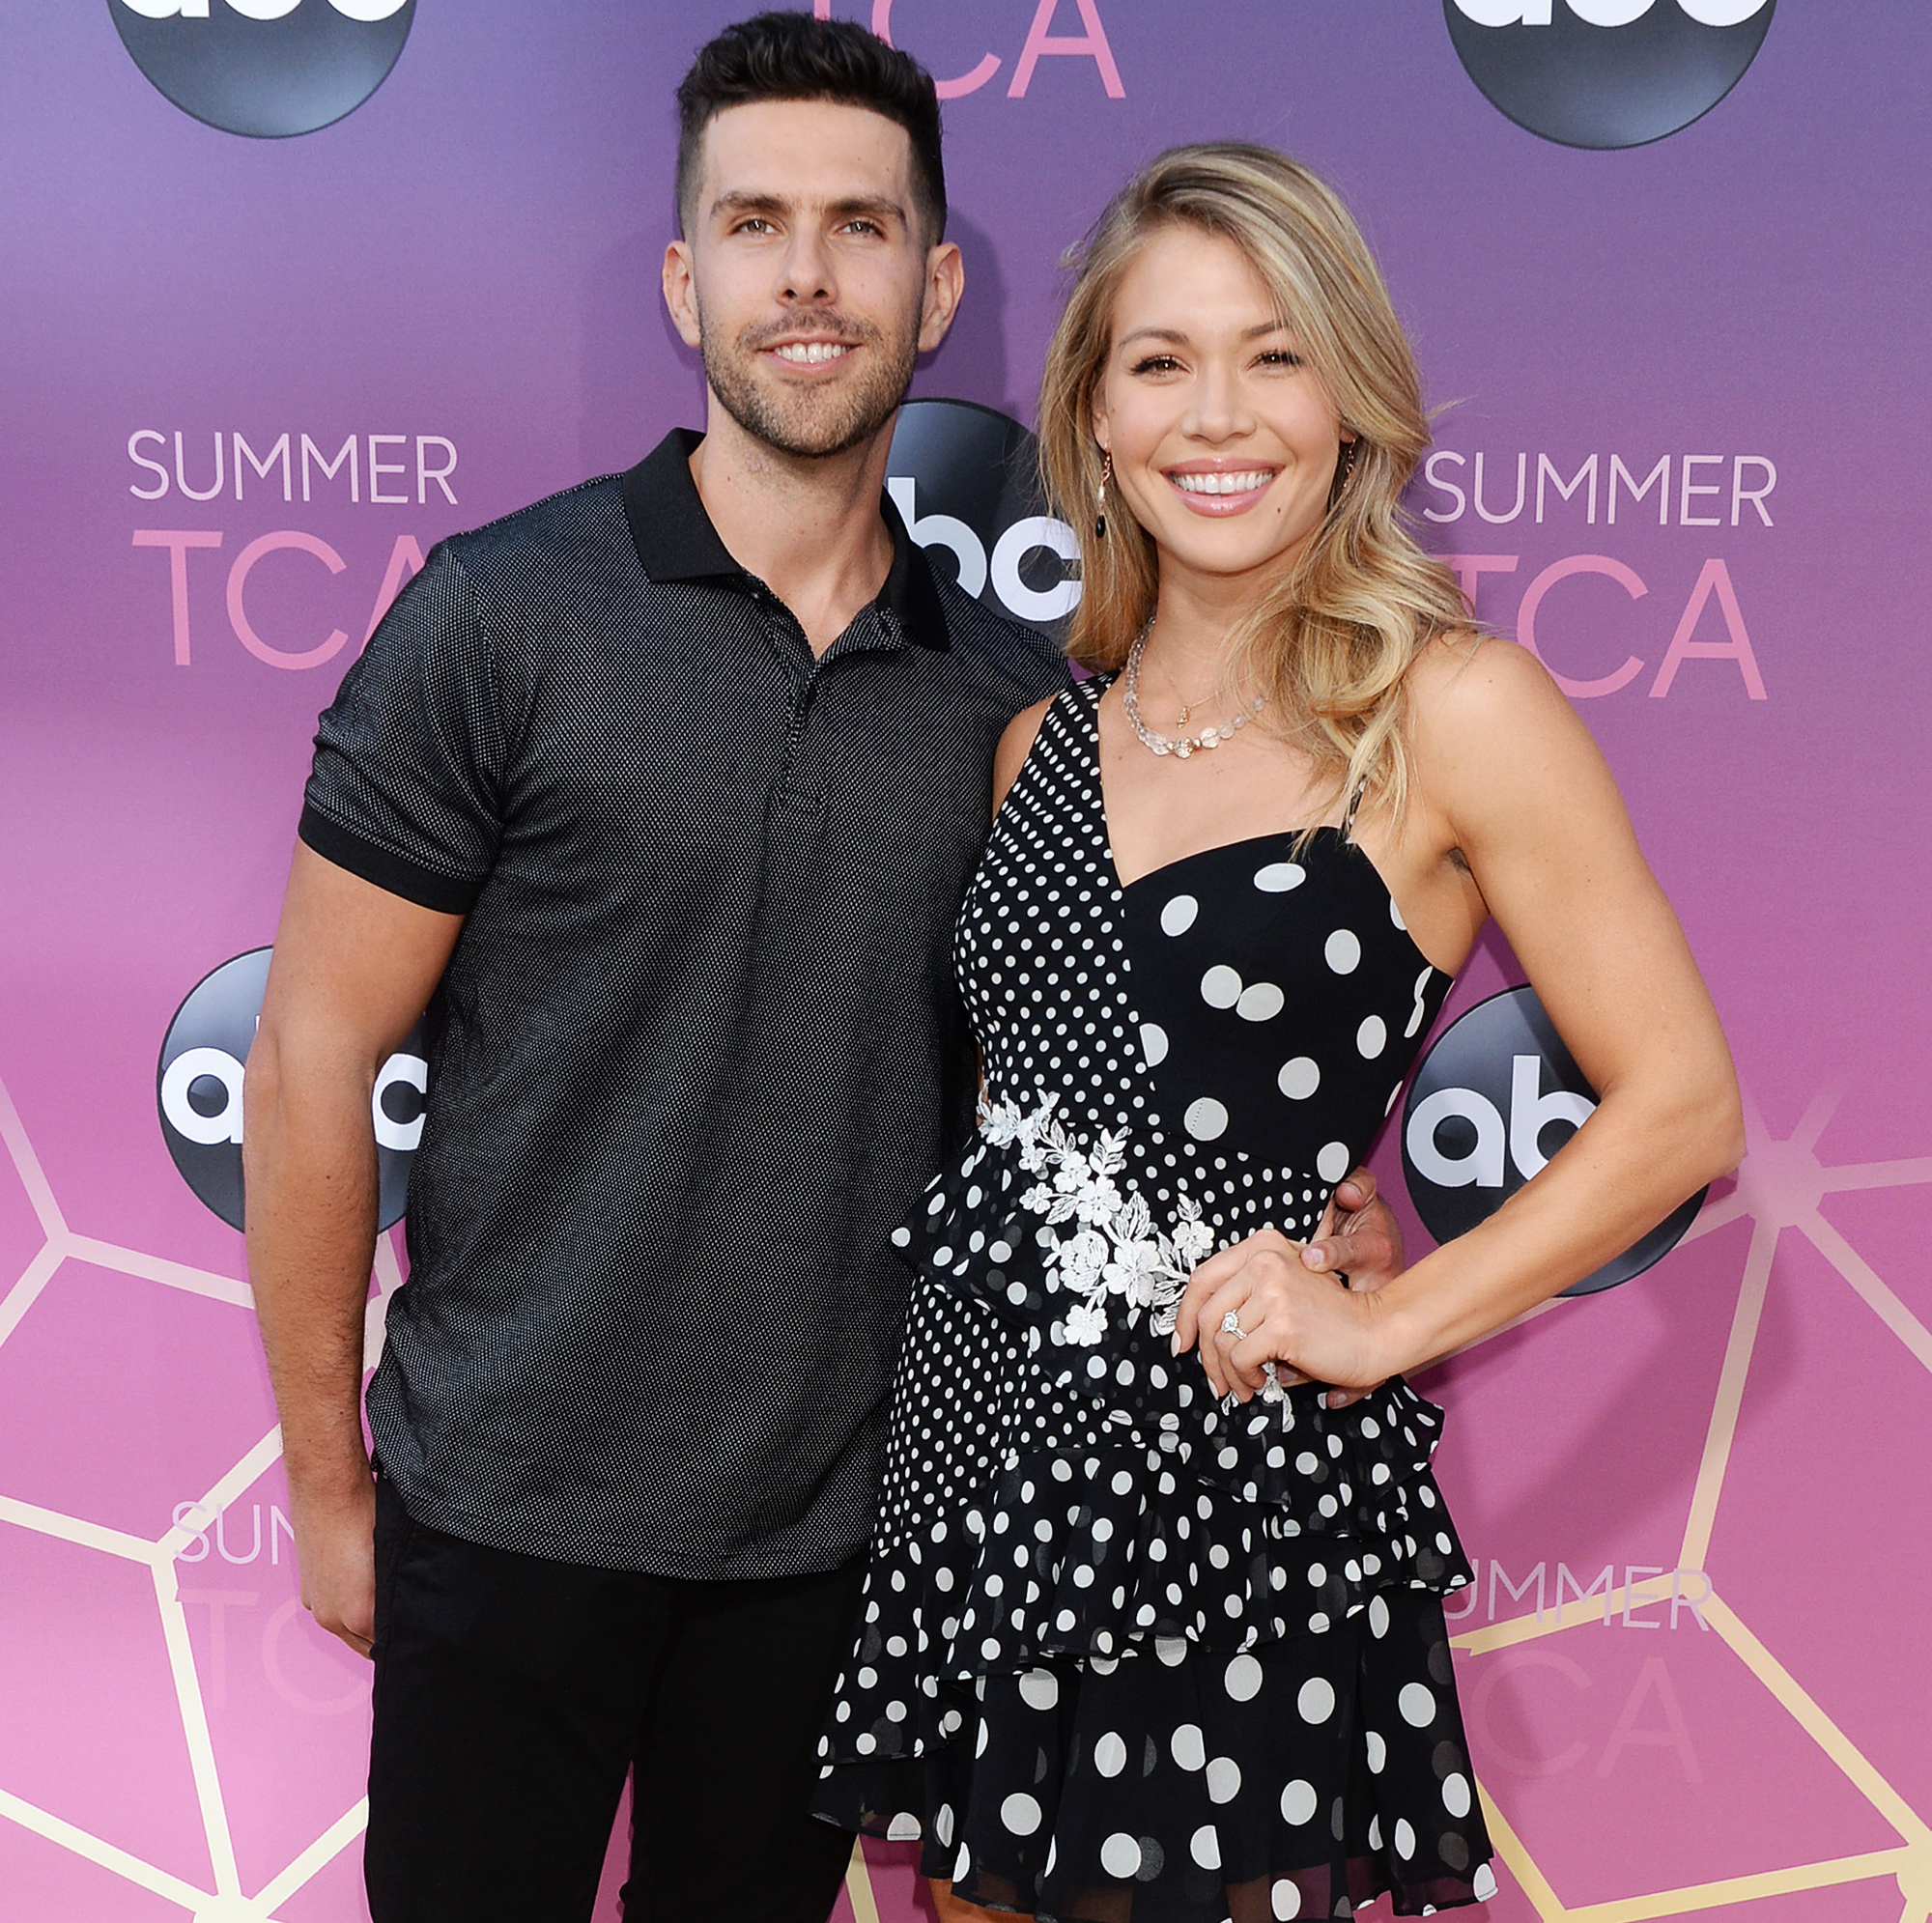 Chris Randone Jokes About Divorce From Krystal Nielson After Her Pregnancy Announcement